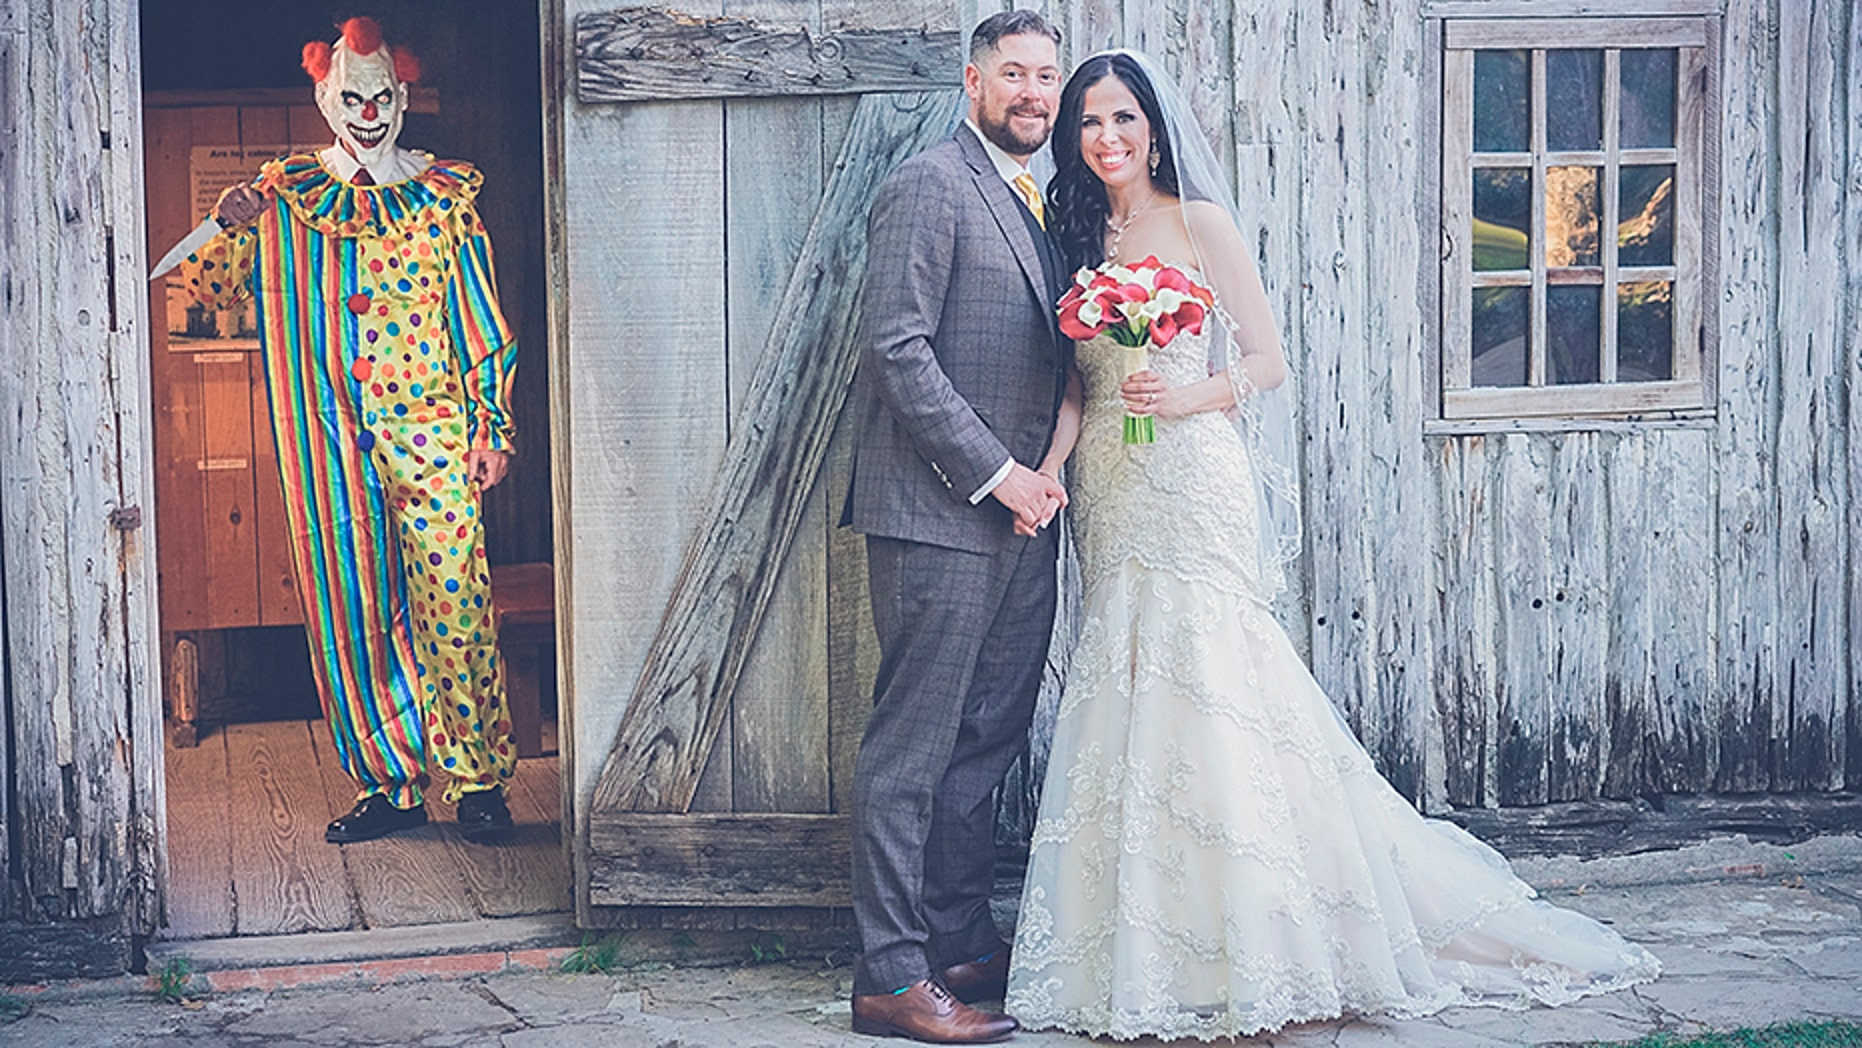 Newlywed Manda Alexander was in for a shock when her husband gifted her a picture from their wedding with an unexpected guest.